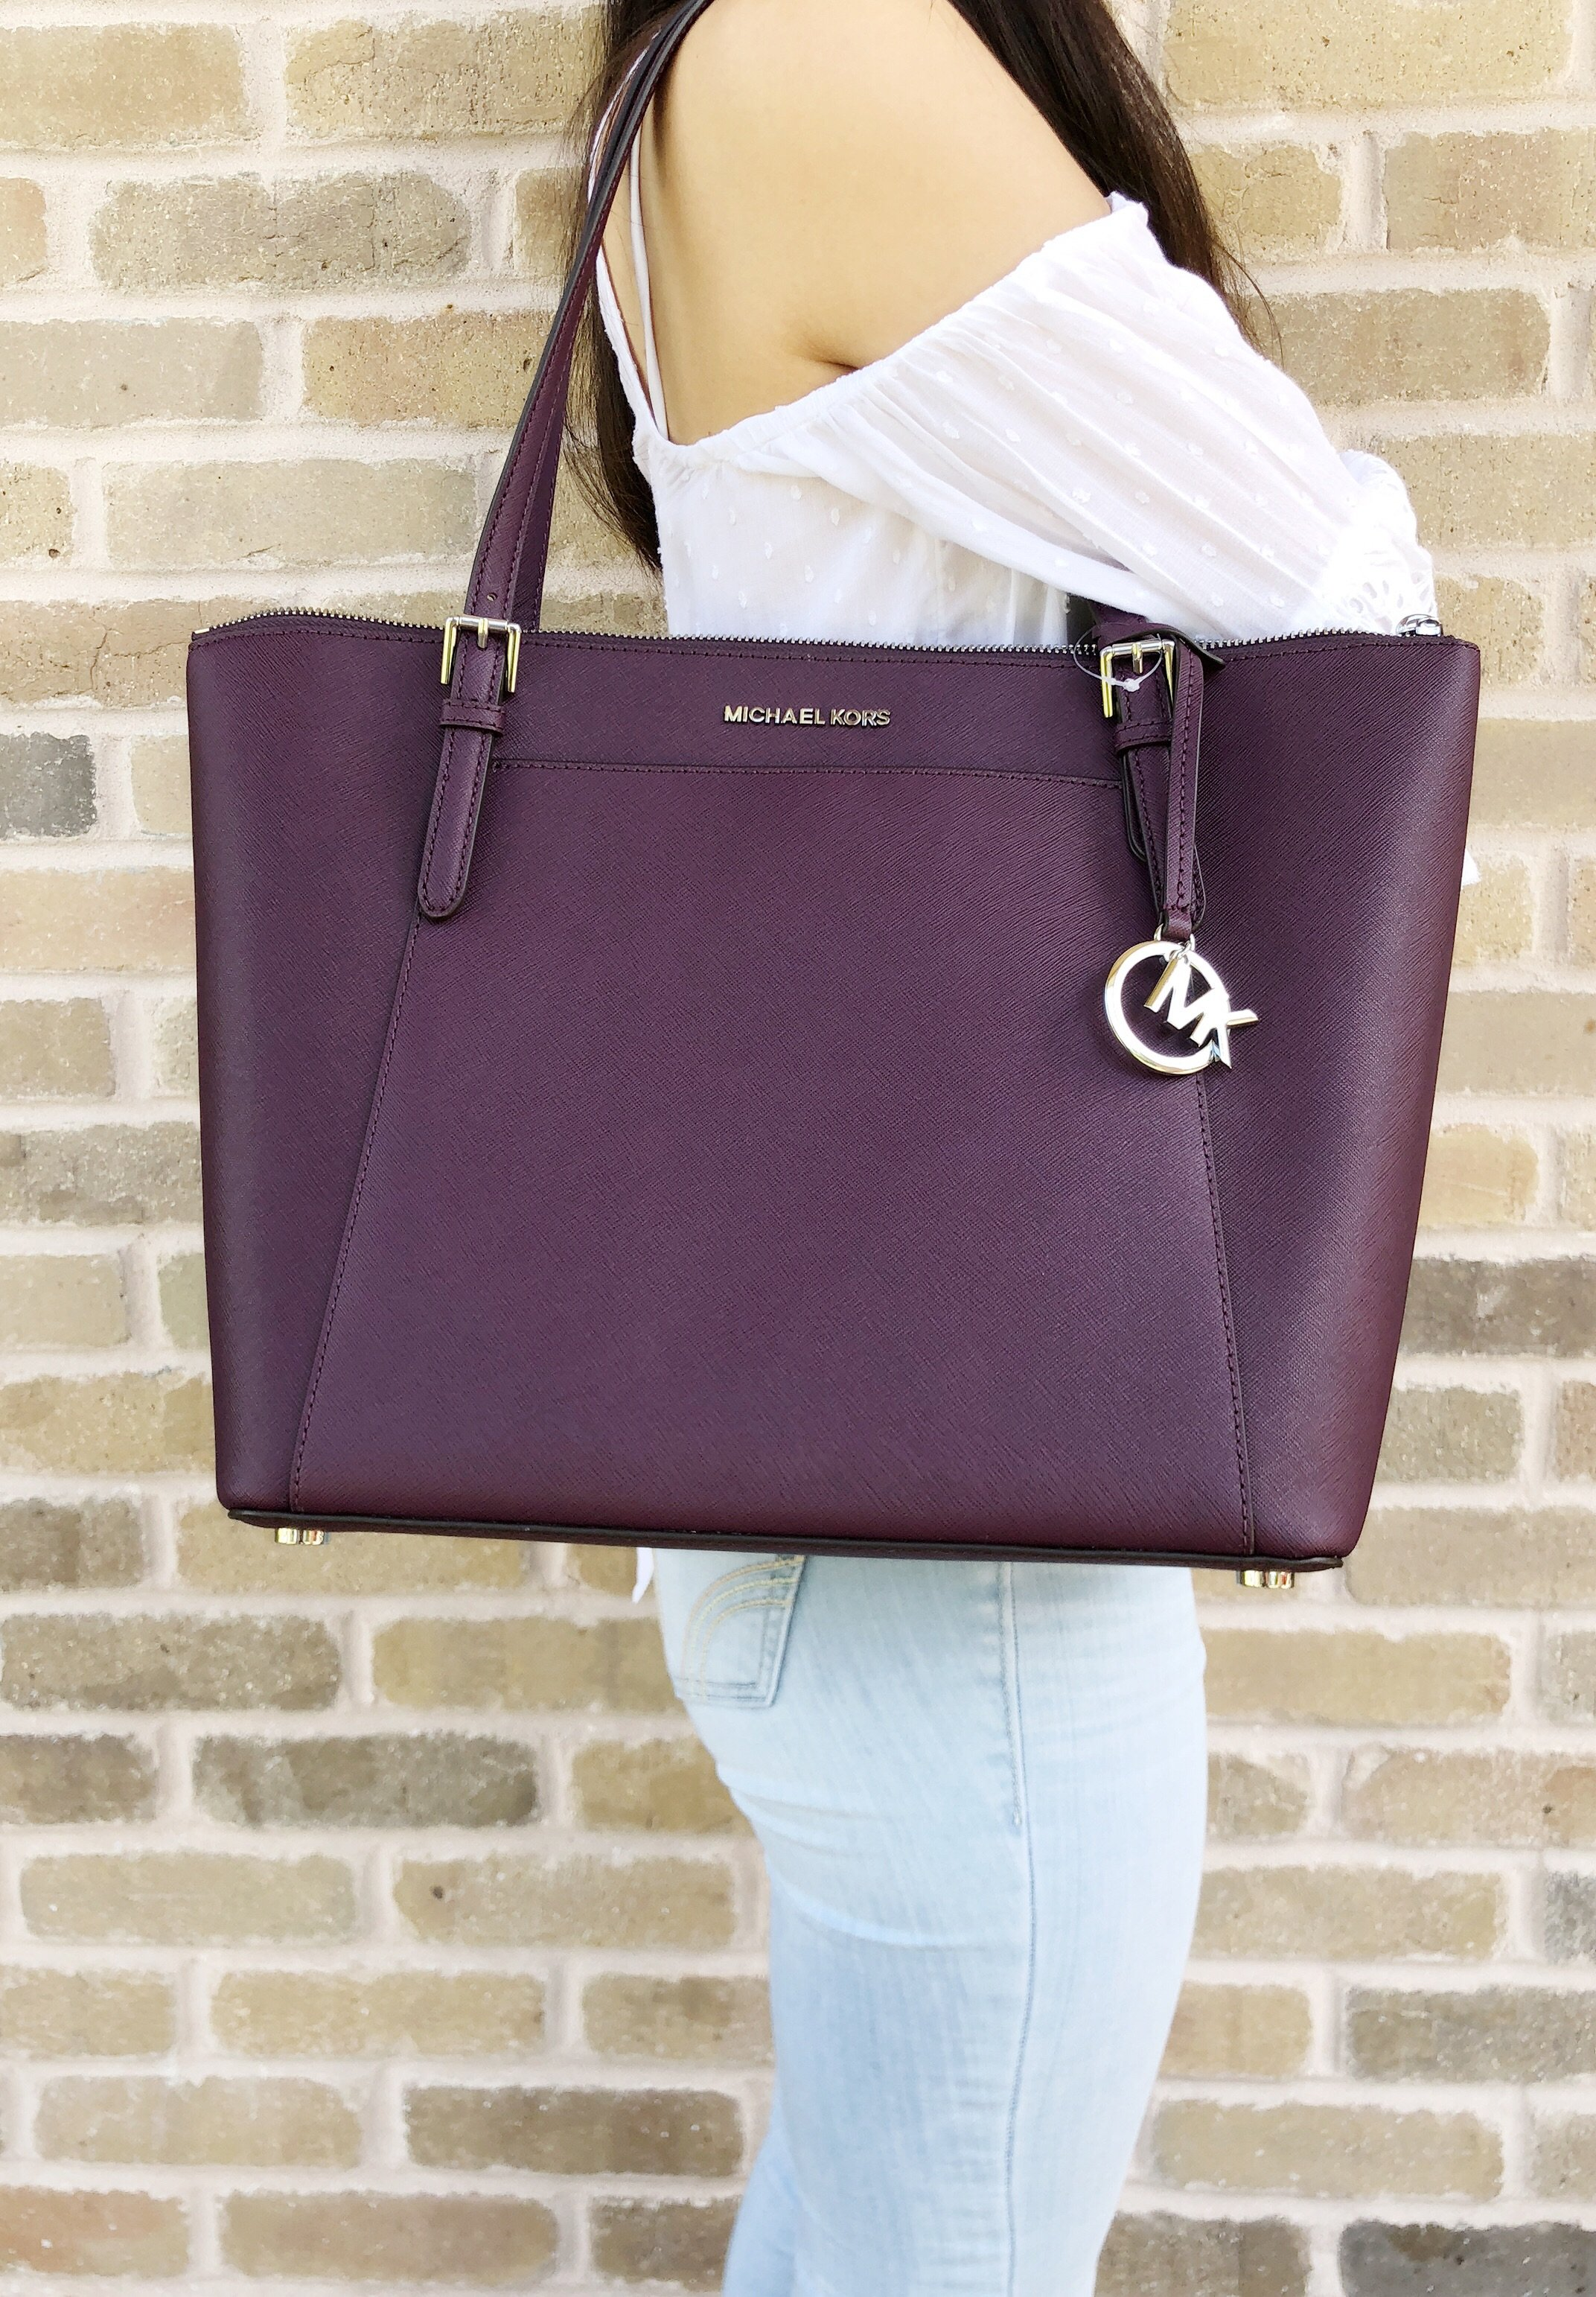 a07e26d87fcf Michael Kors Ciara Large East West Top Zip Tote Damson Purple Saffiano  #Handbags #MichaelKors #MK